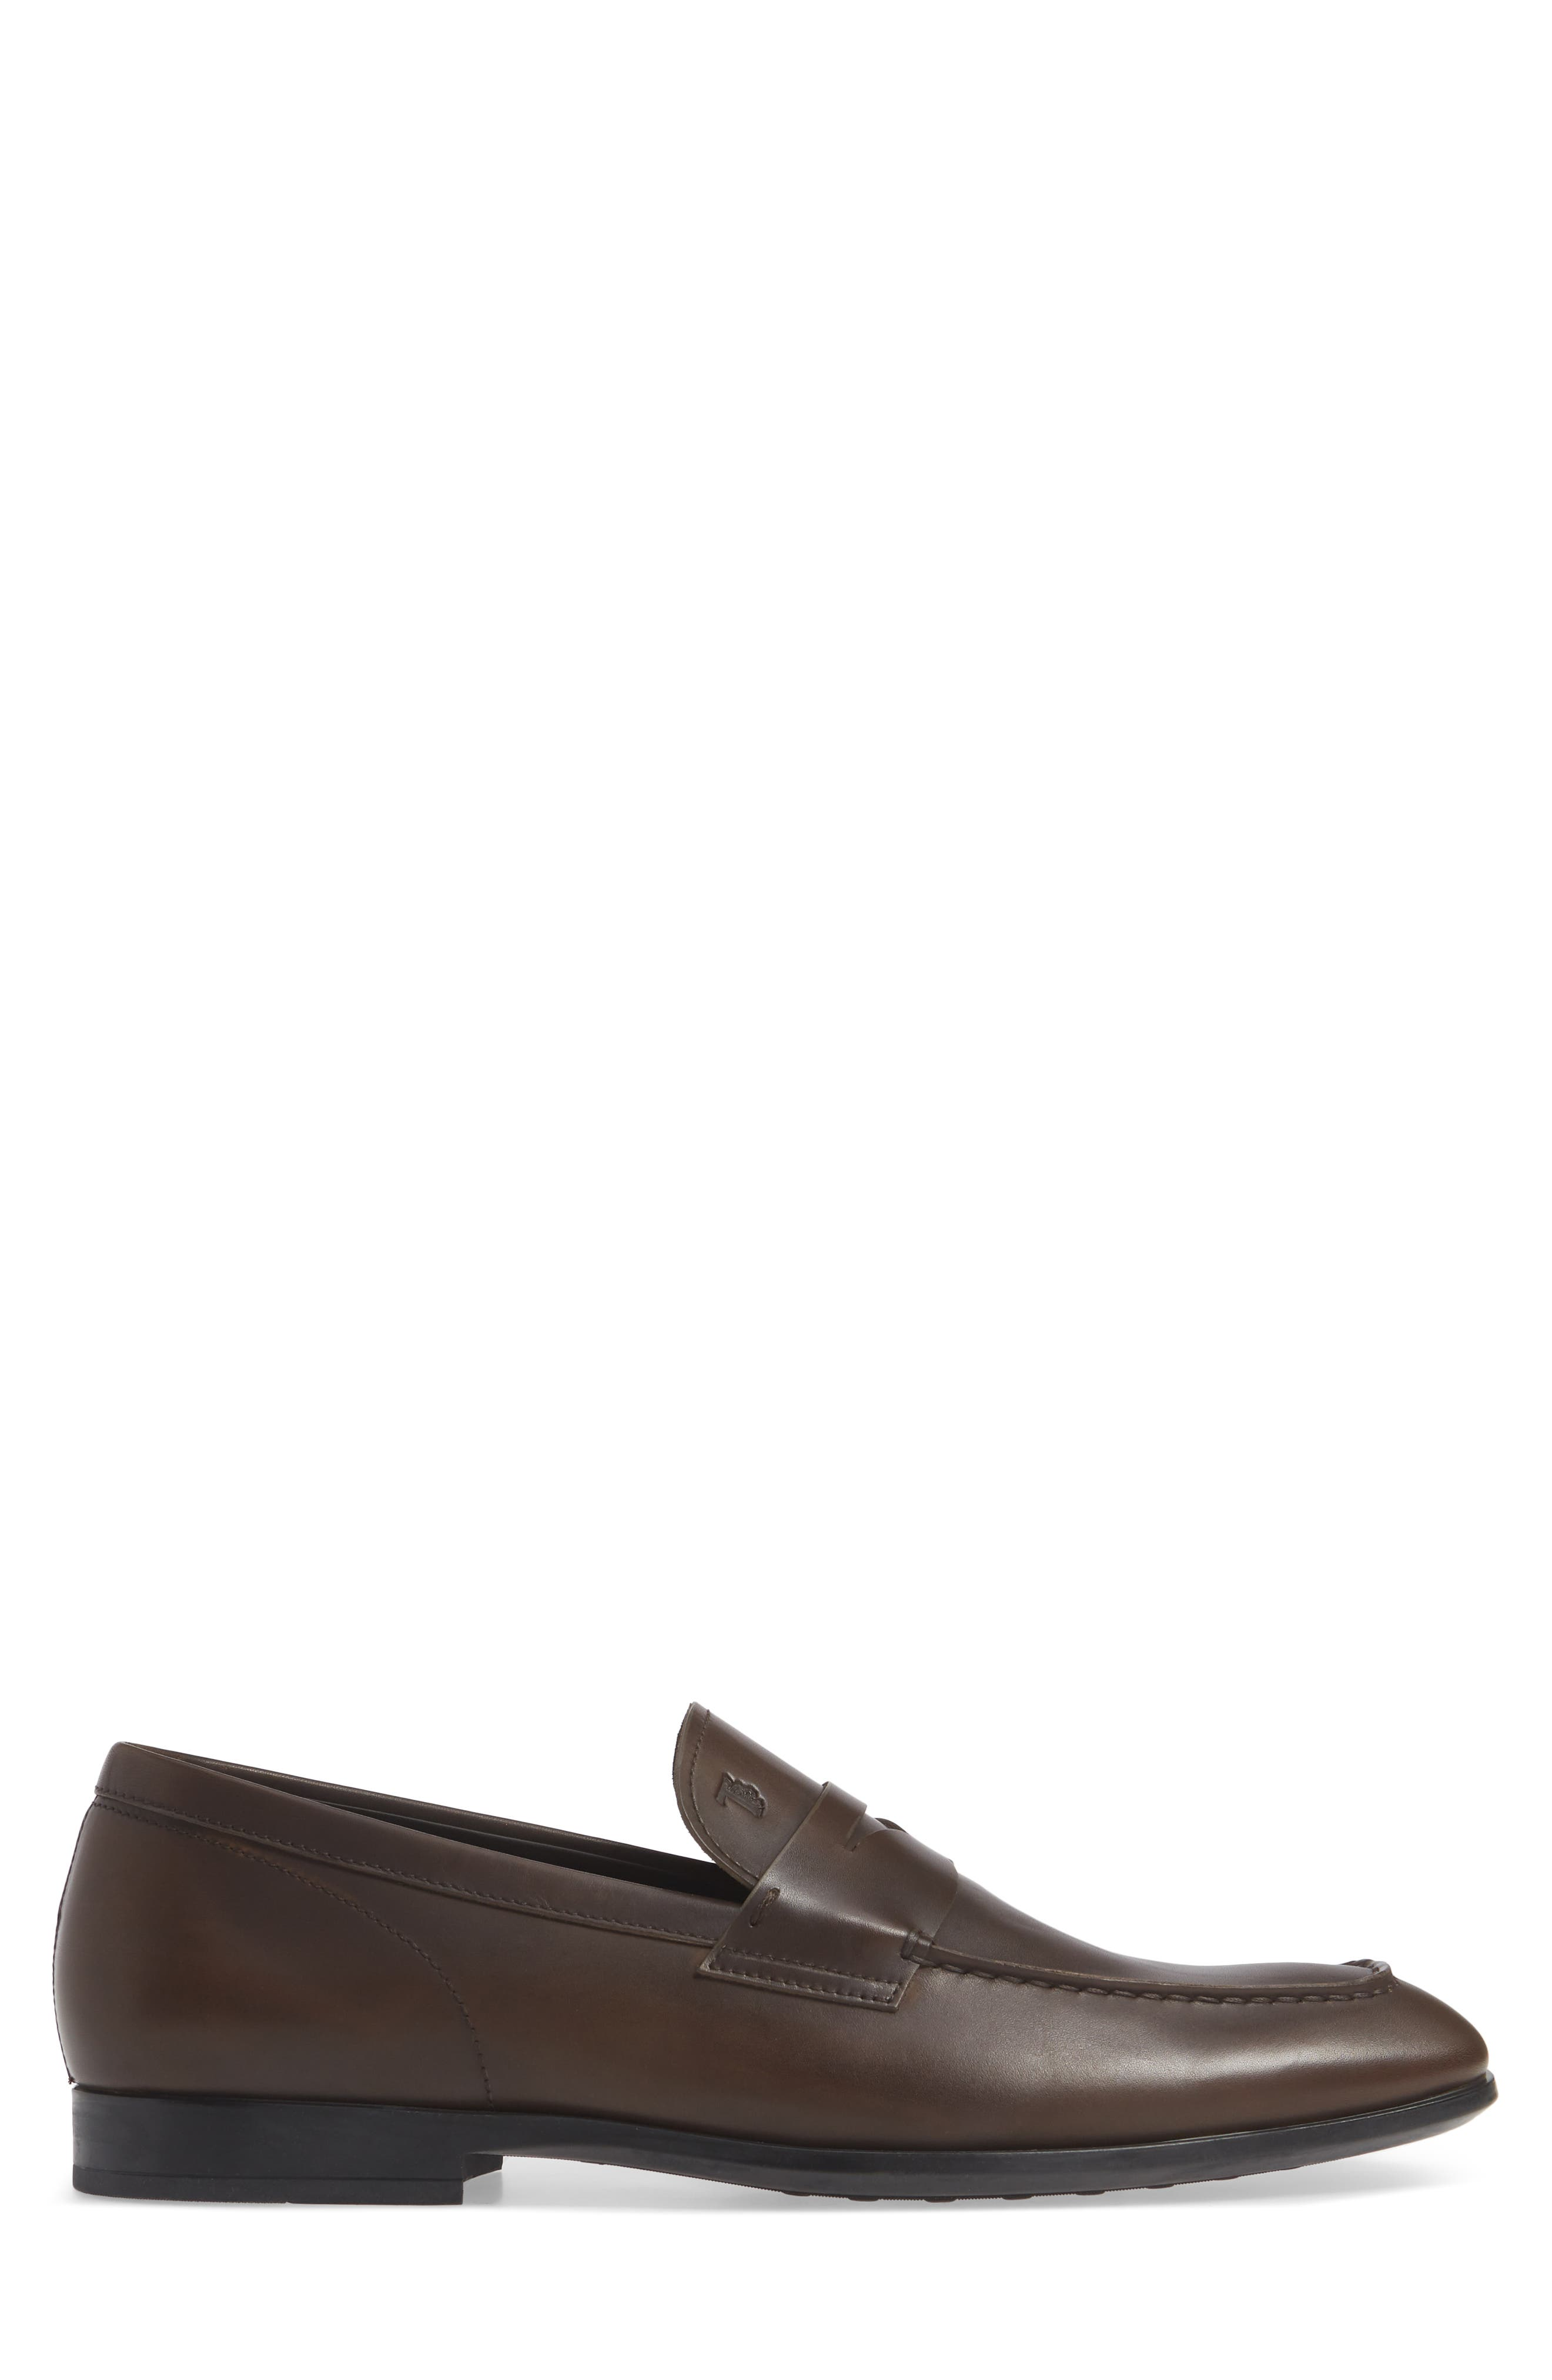 TOD'S, Mocassino Penny Loafer, Alternate thumbnail 3, color, DARK BROWN